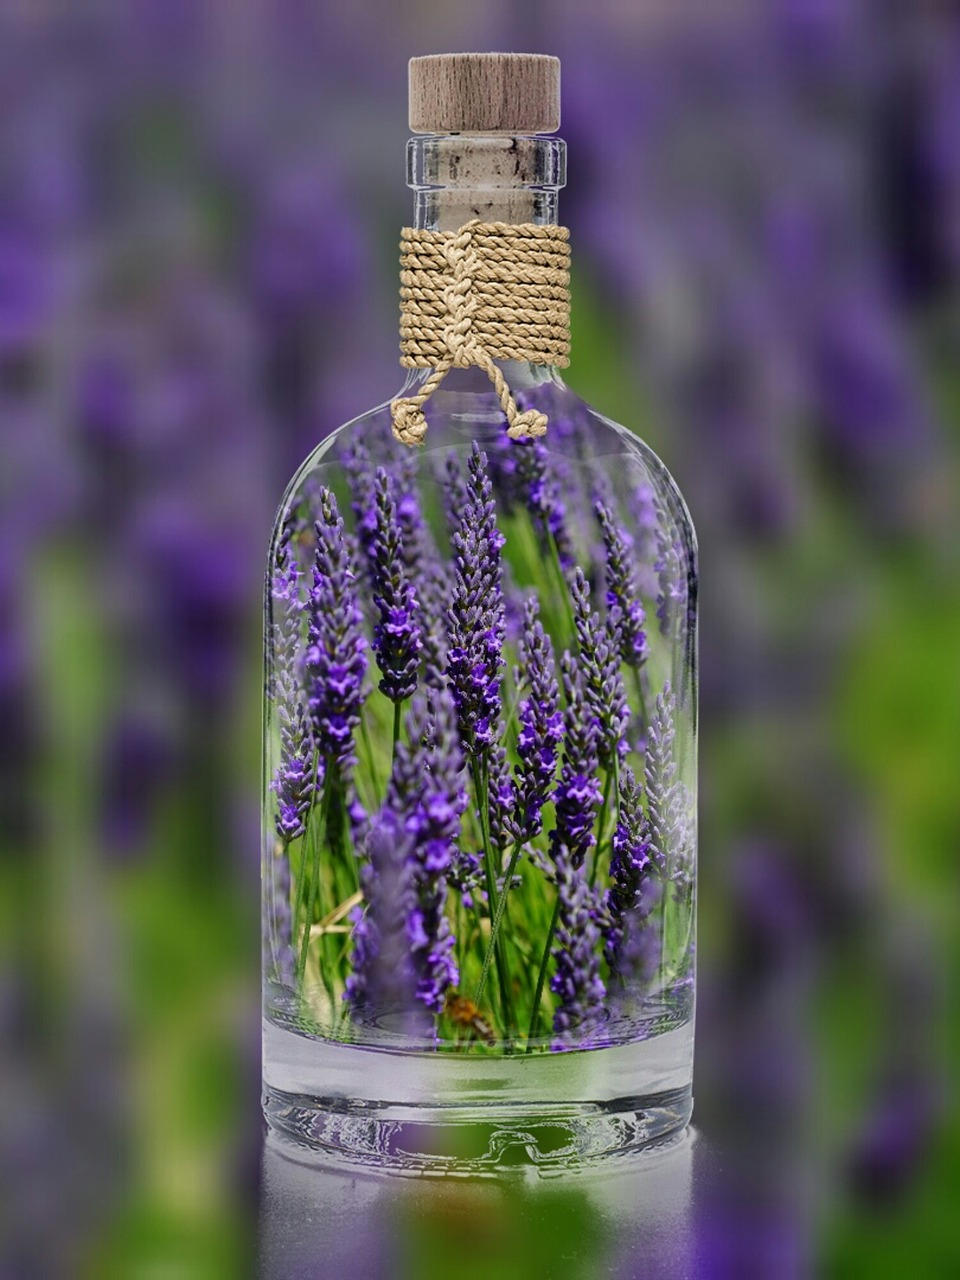 Lavender Recipes, Lavender Extract is easy to make and beneficial to have on hand. #LavenderRecipe #HowToMakeLavenderOil #GardensAll